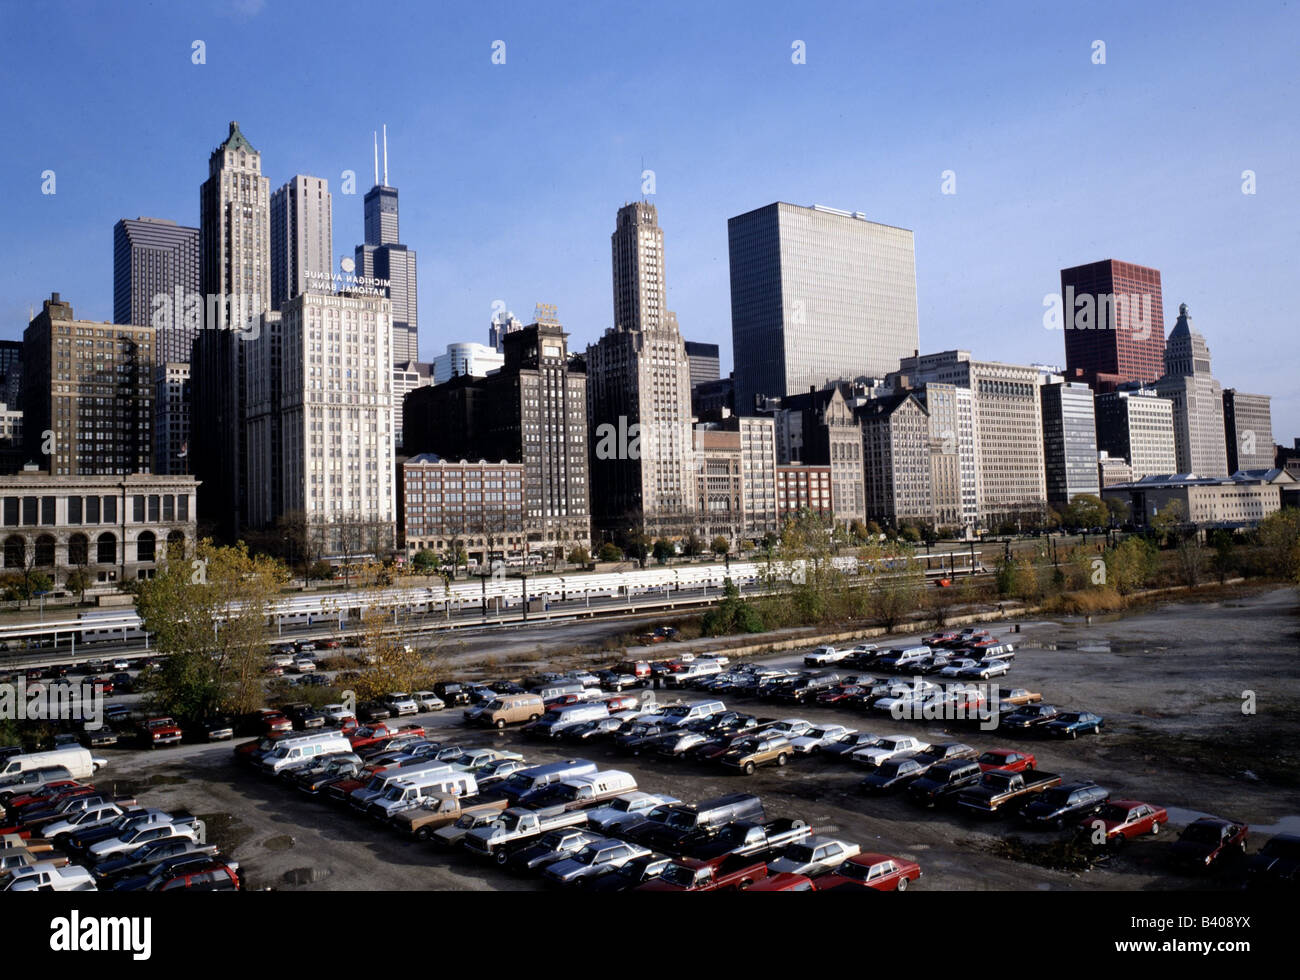 Chicago Car Park High Resolution Stock Photography And Images Alamy